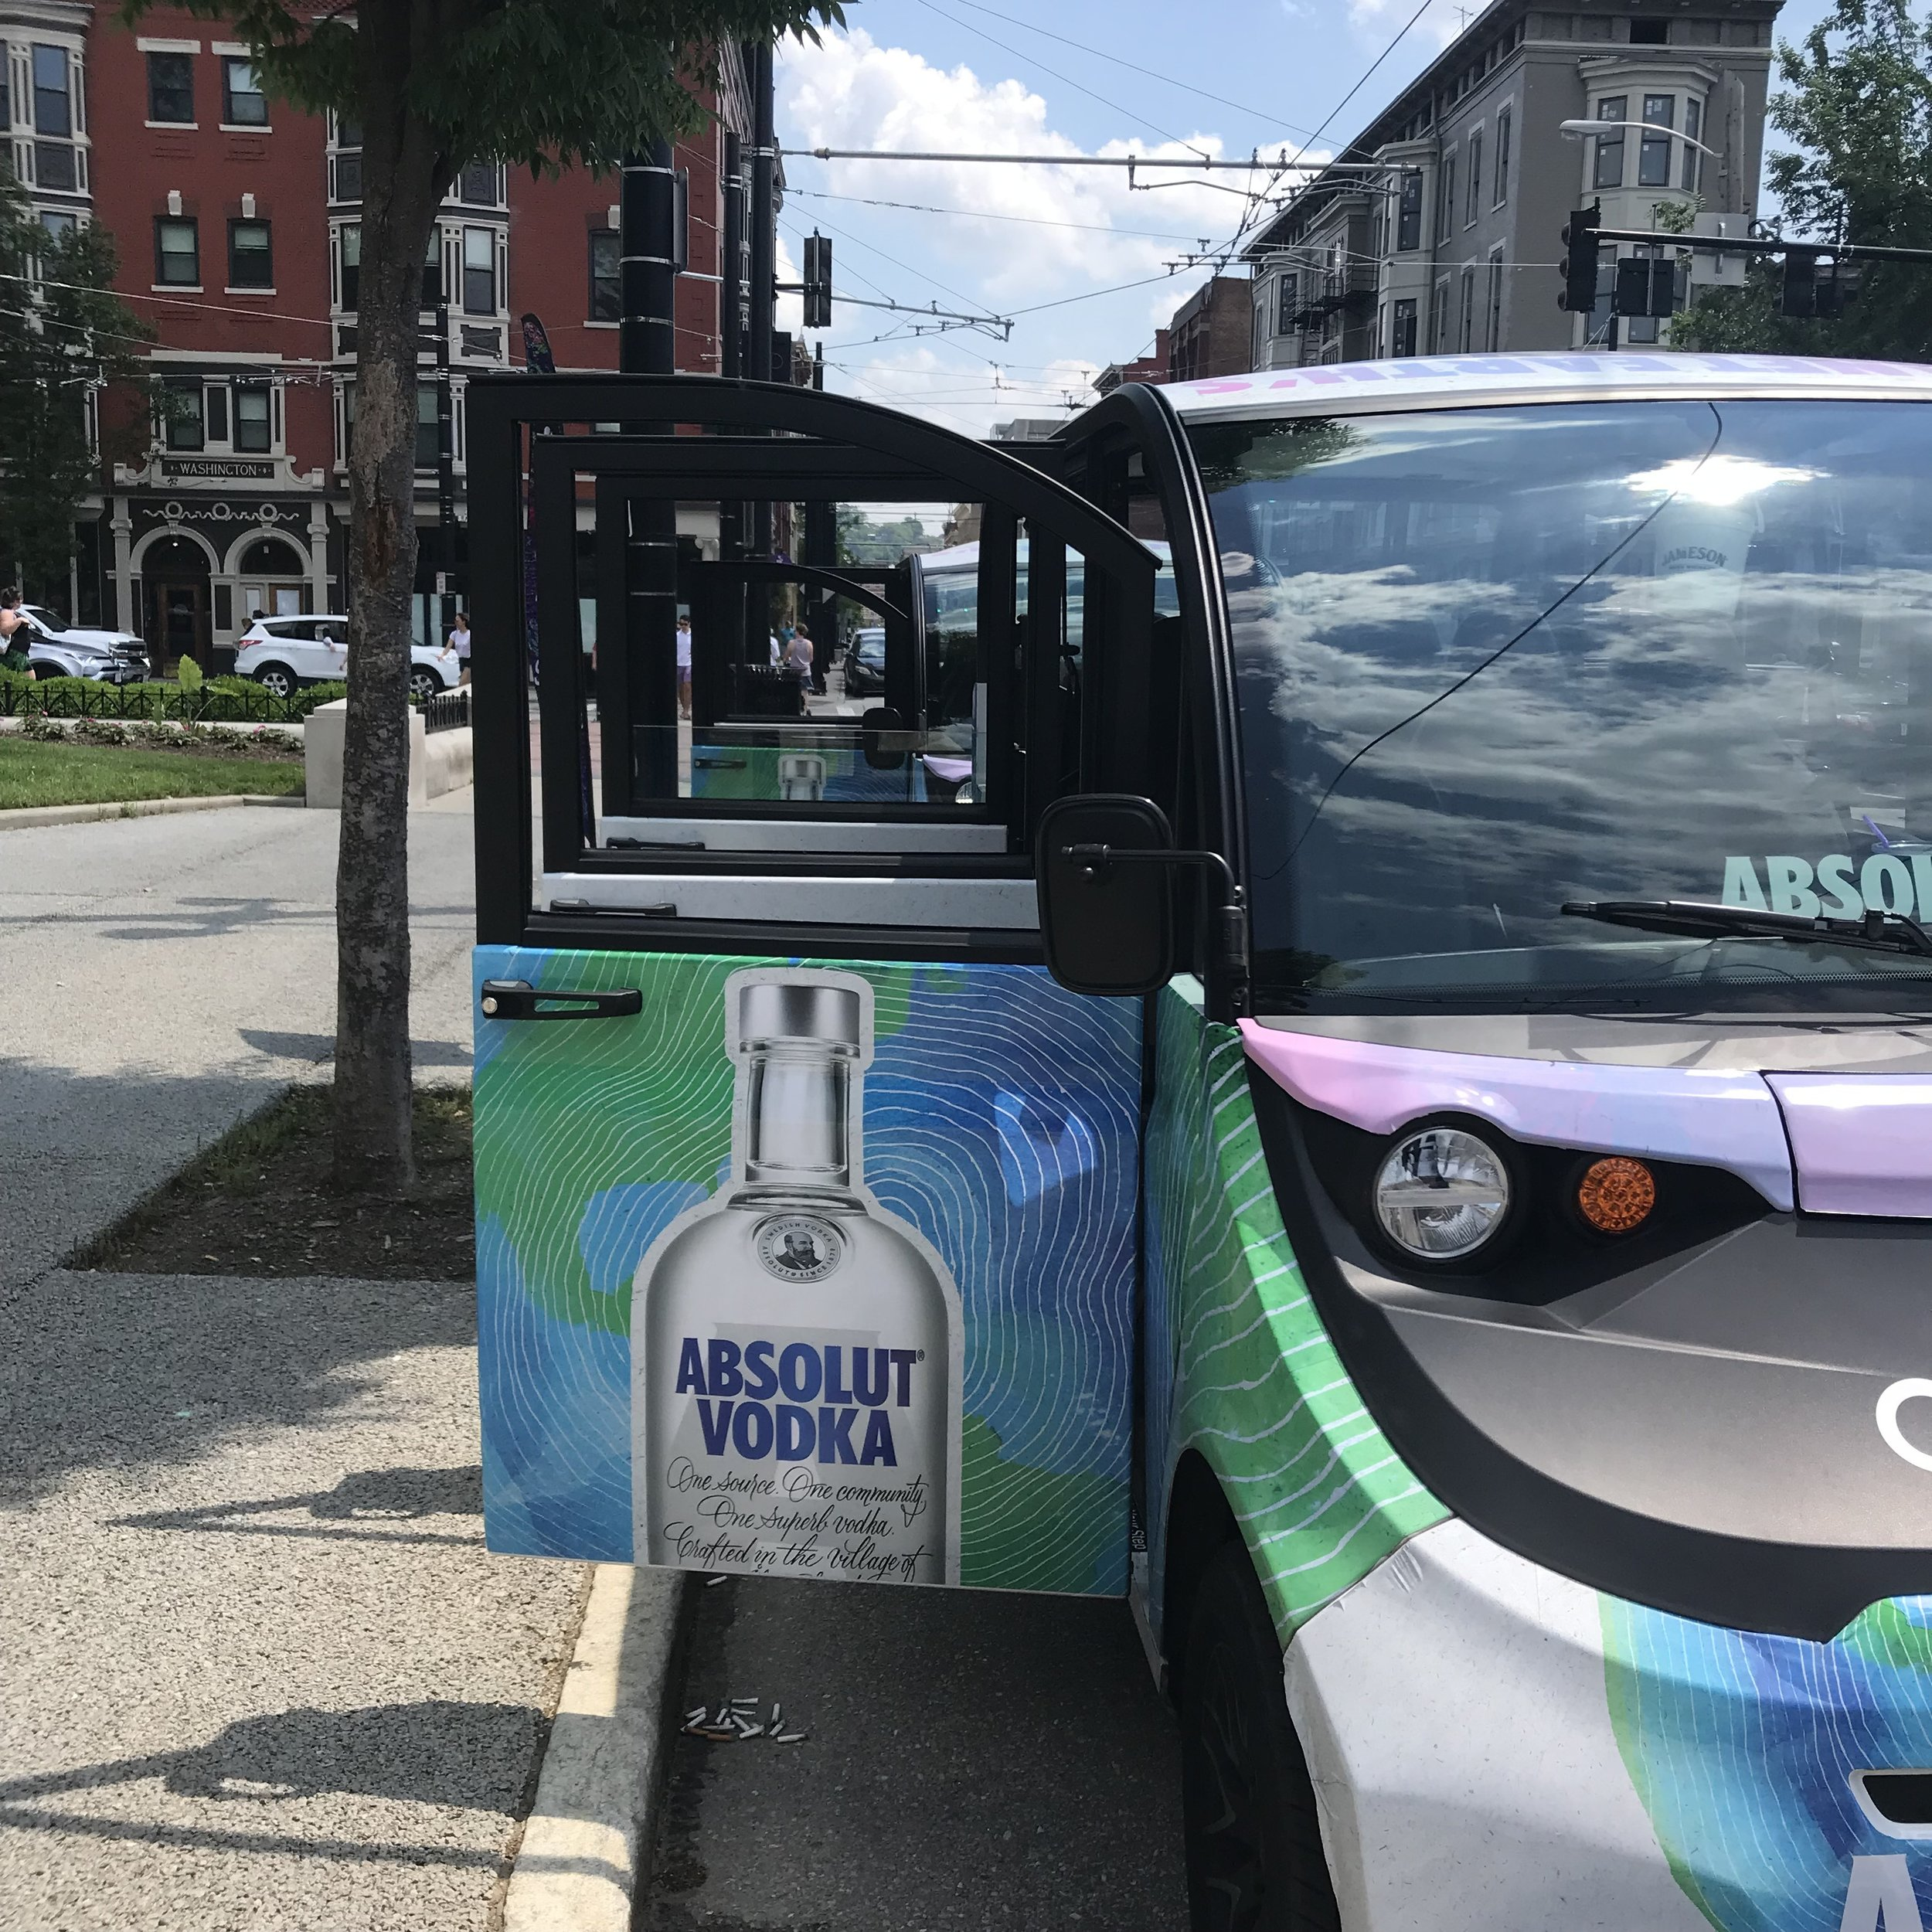 Rides await City Flea and Summer Celebration visitors thanks to our sponsor, Absolut.